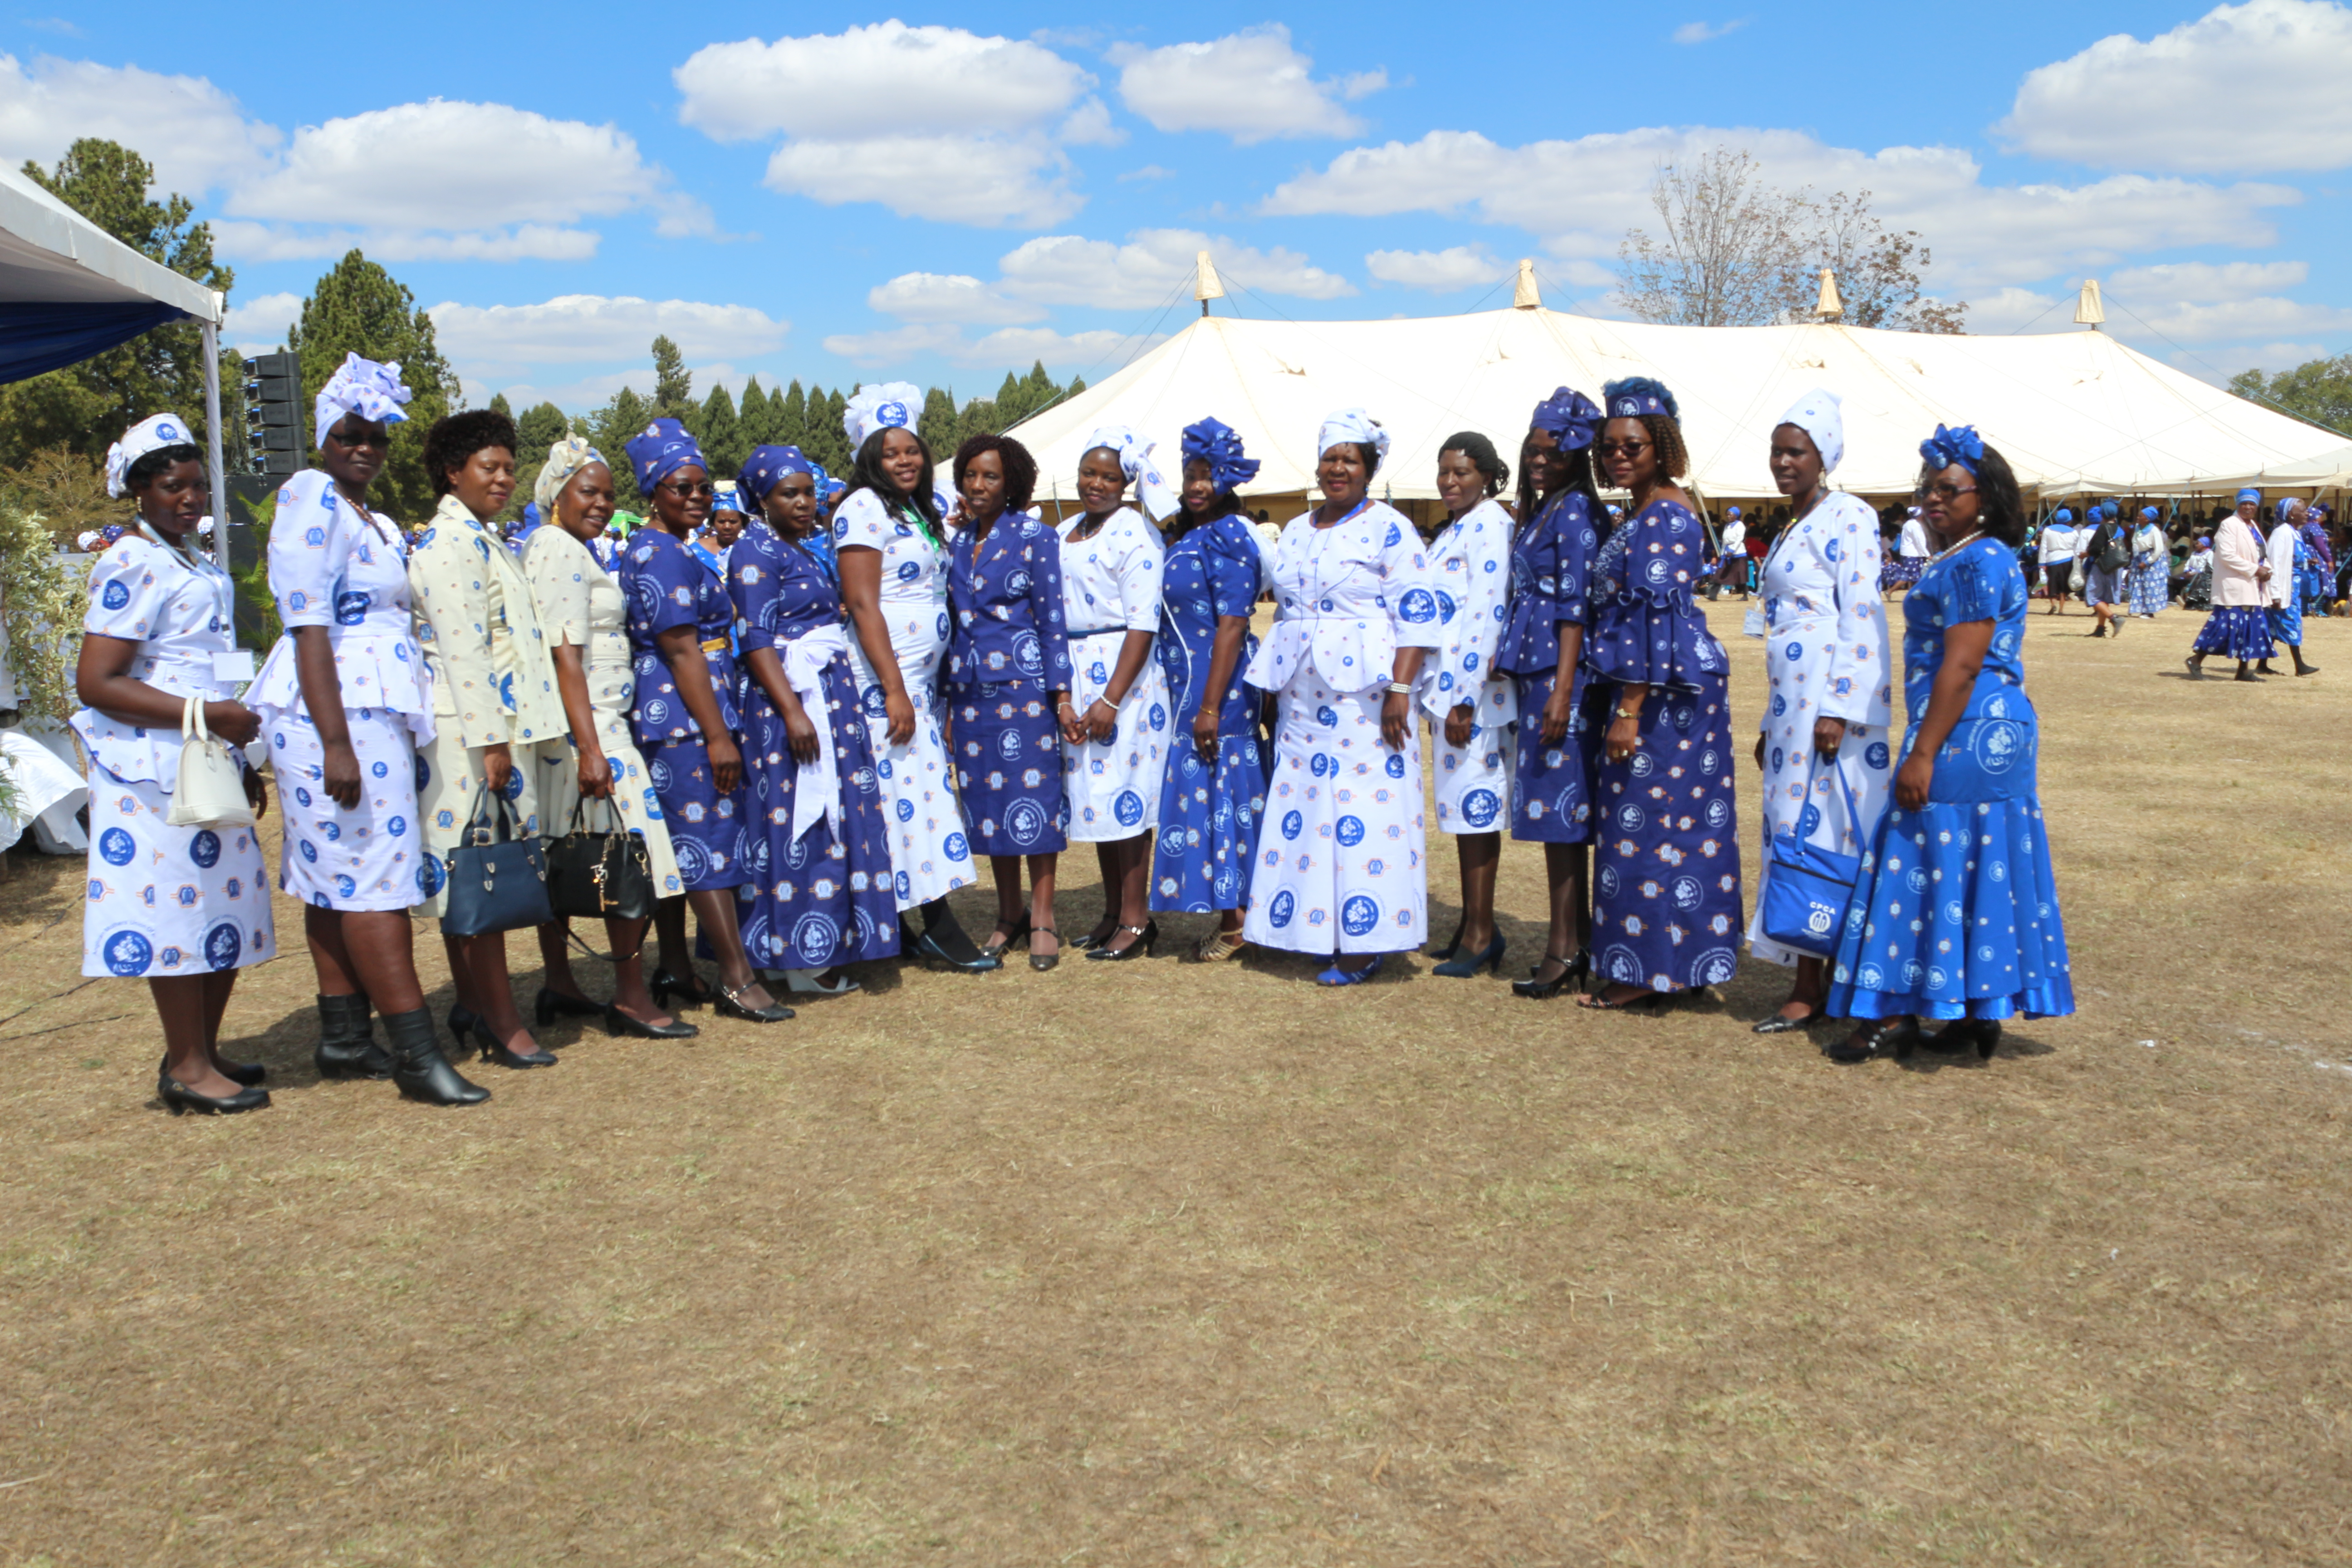 Members in Zimbabwe taking part in fashion show